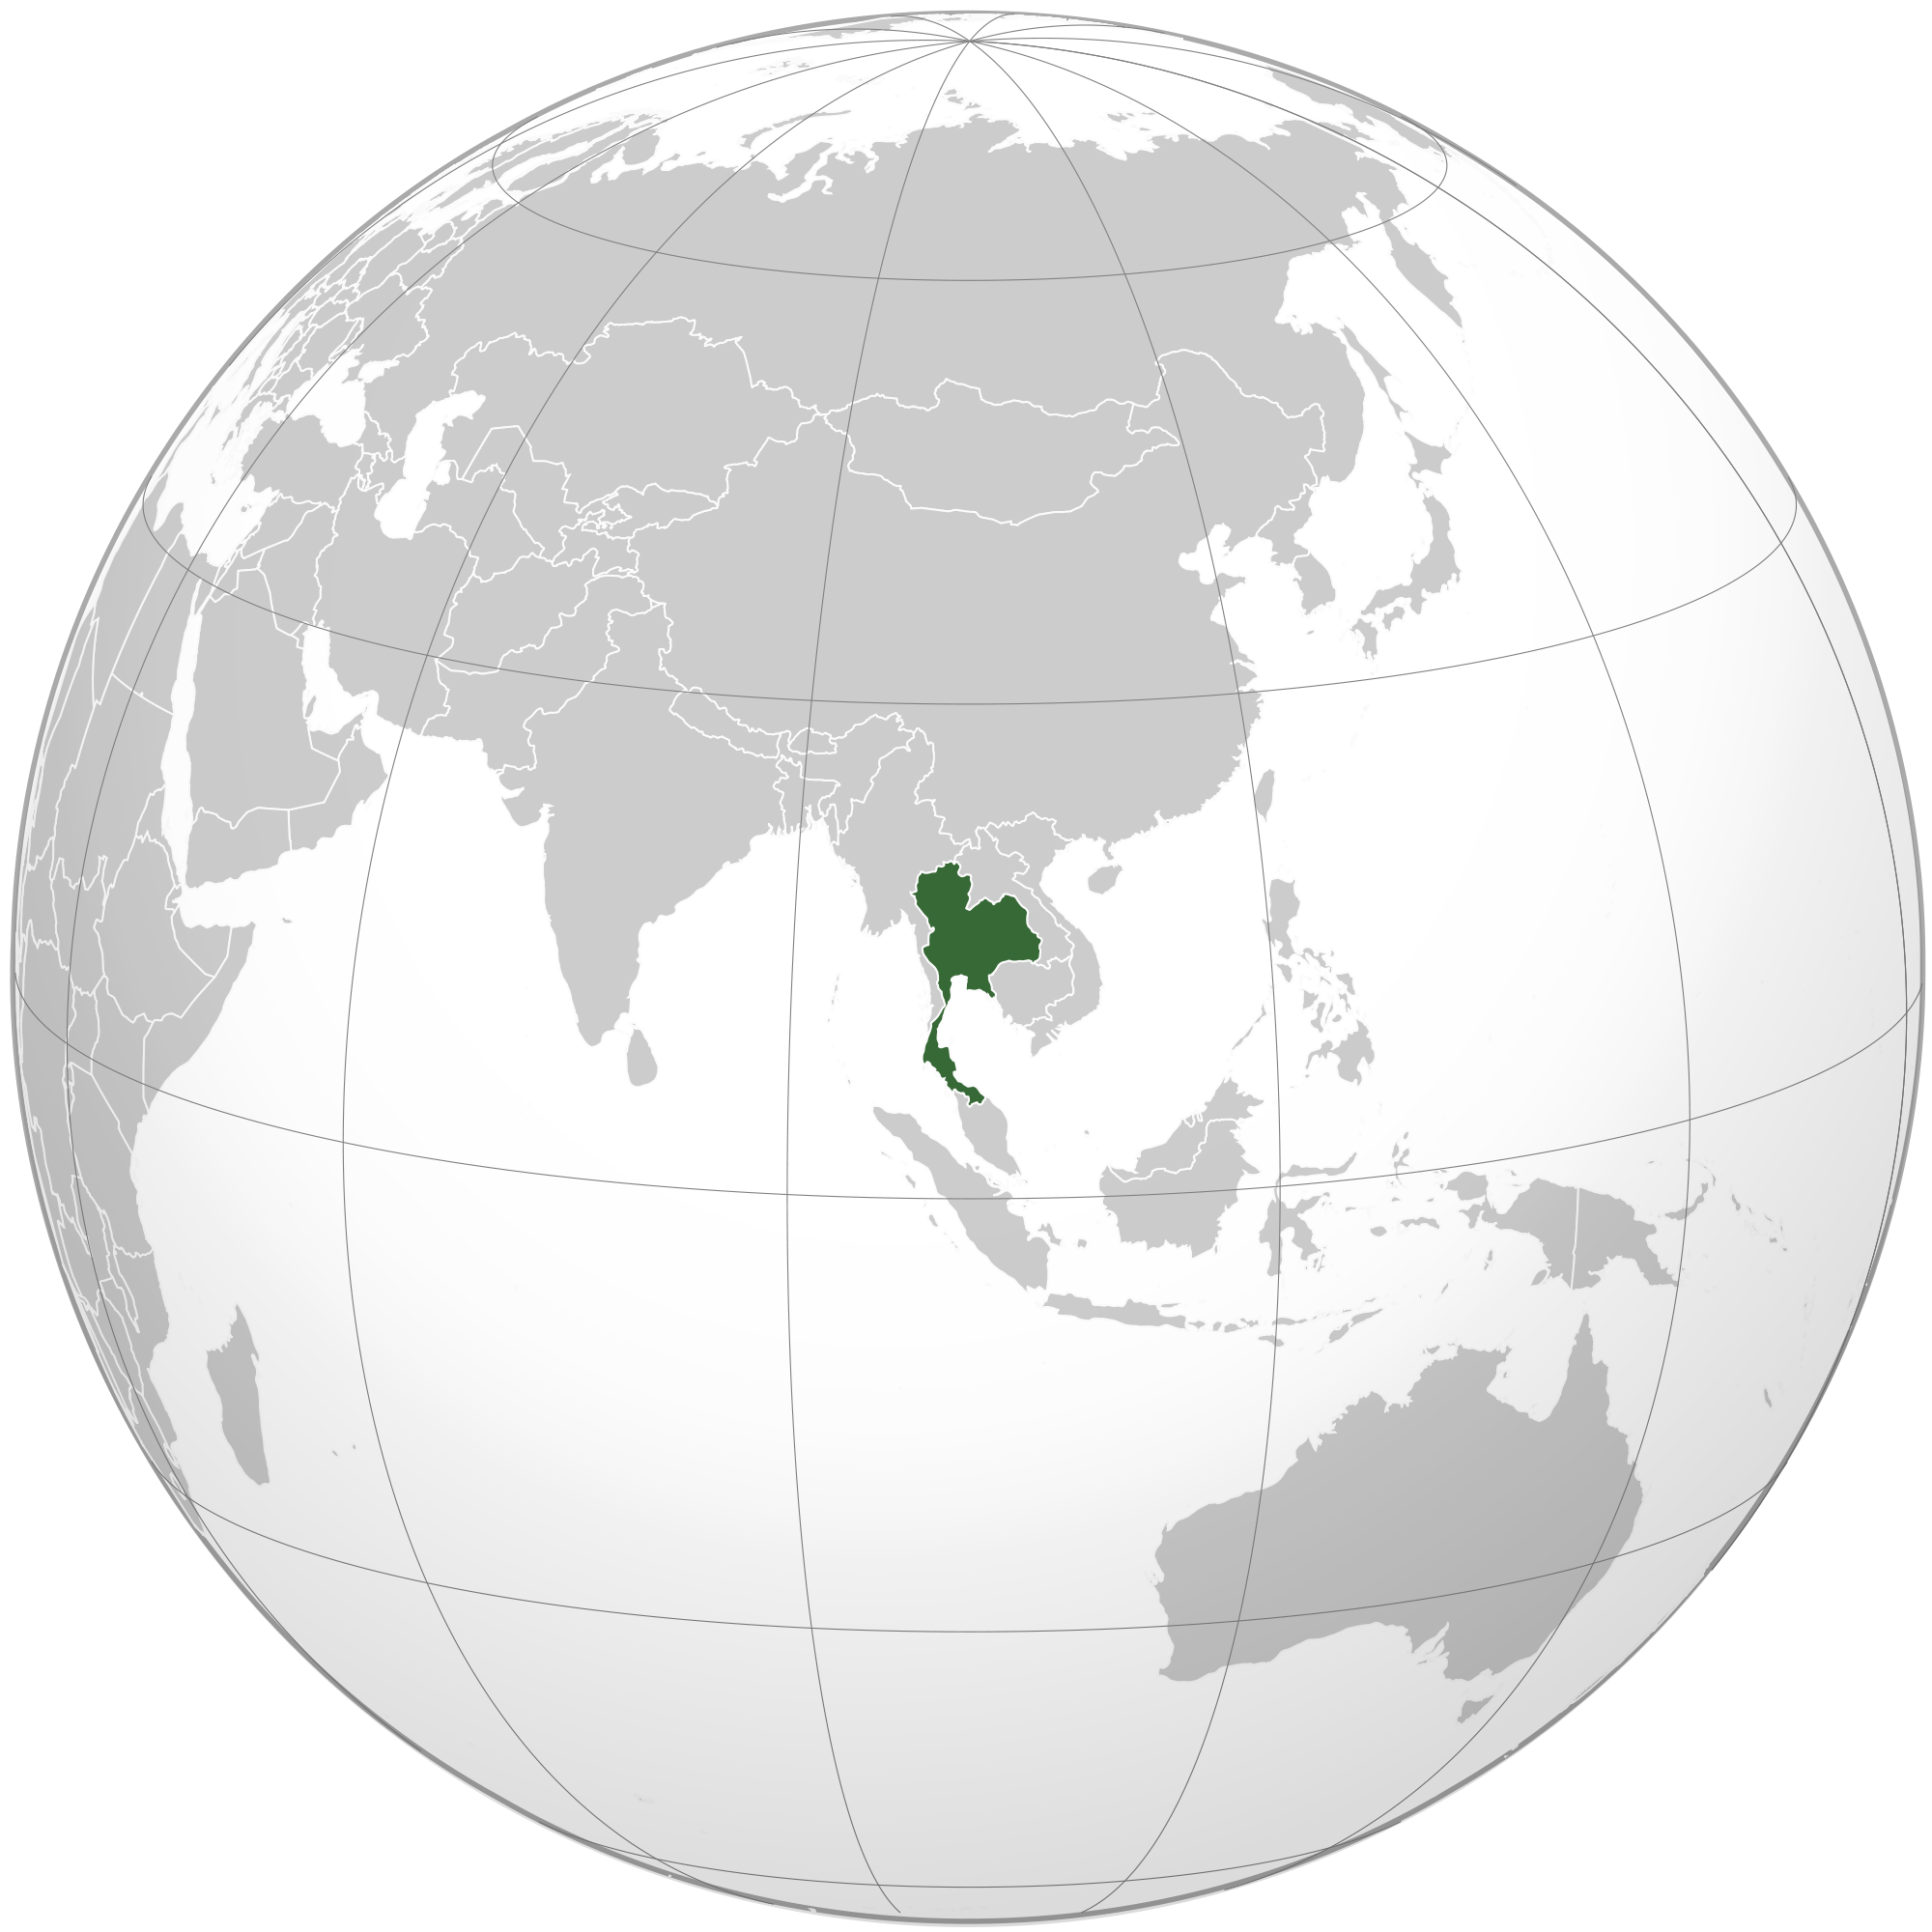 Location of the Thailand in the World Map